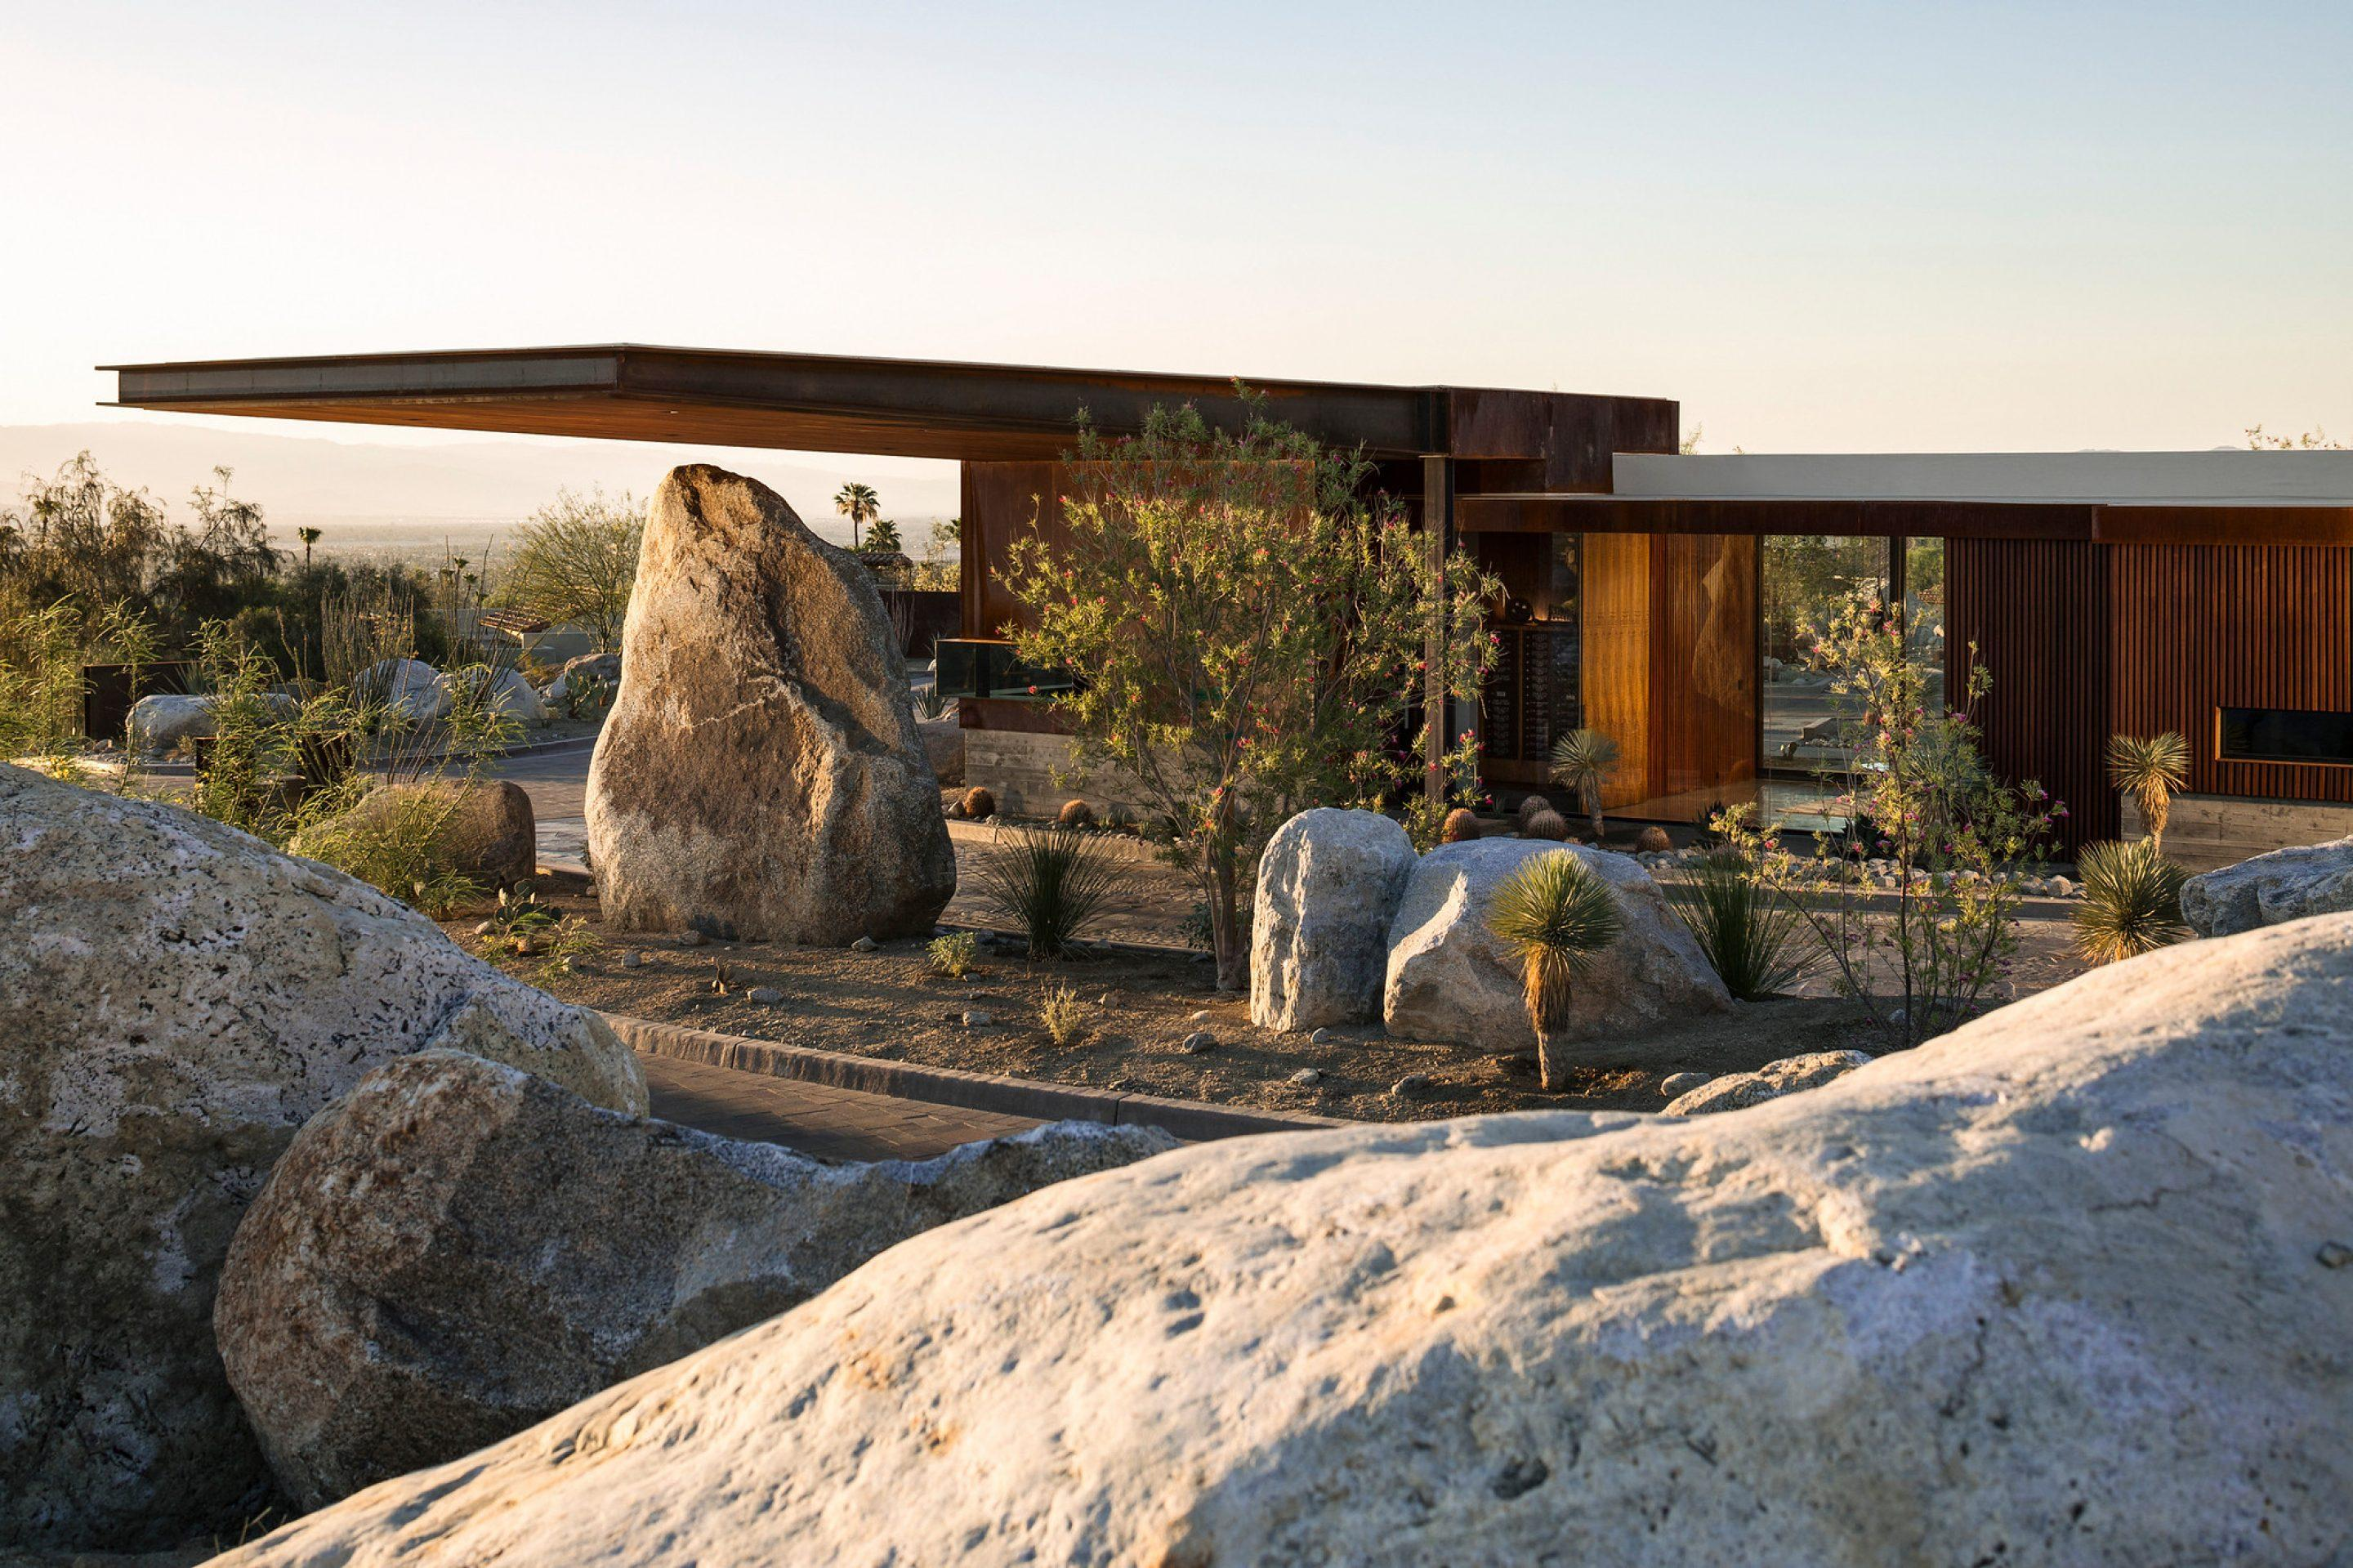 ignant-architecture-sean-lockyer-desert-palisades-009